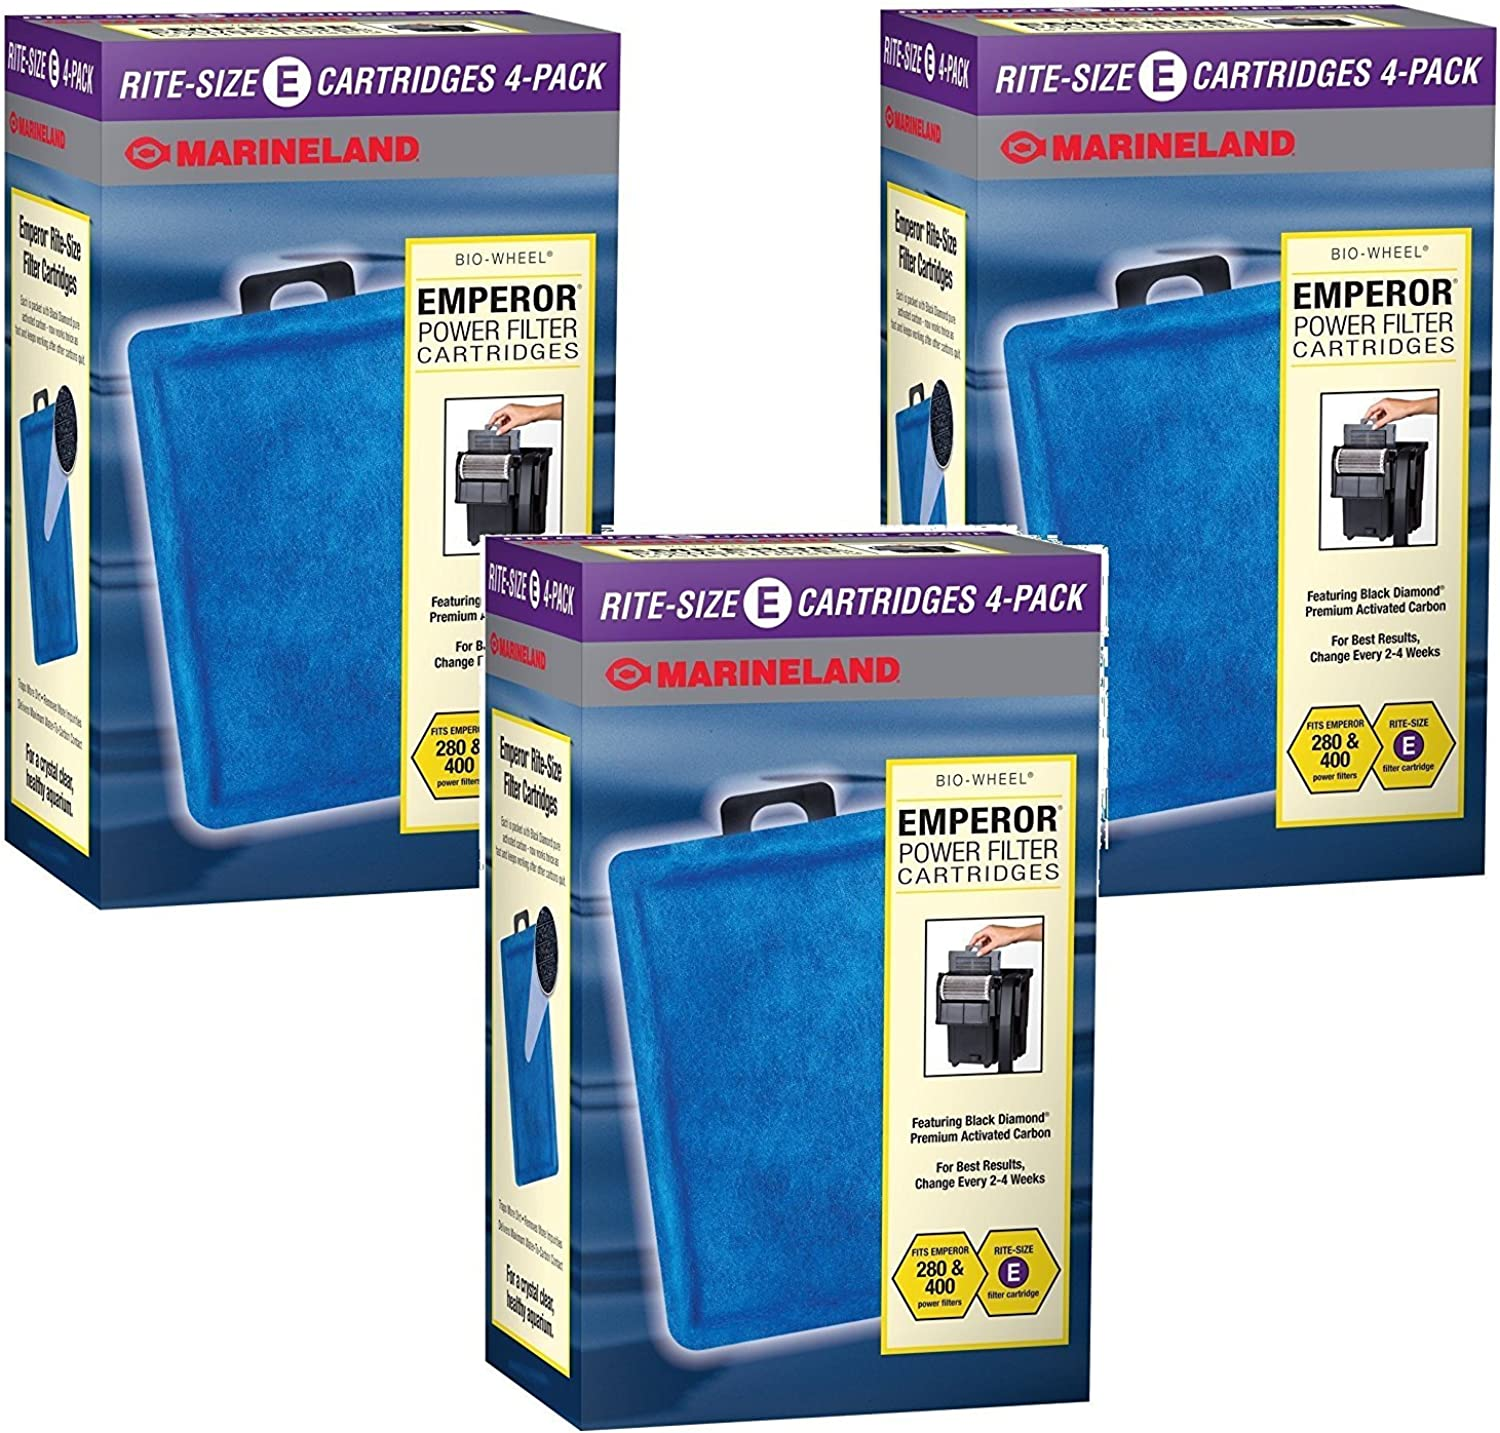 MarineLand Rite Filter Cartridge for Aquarium, Size E, 12Pack